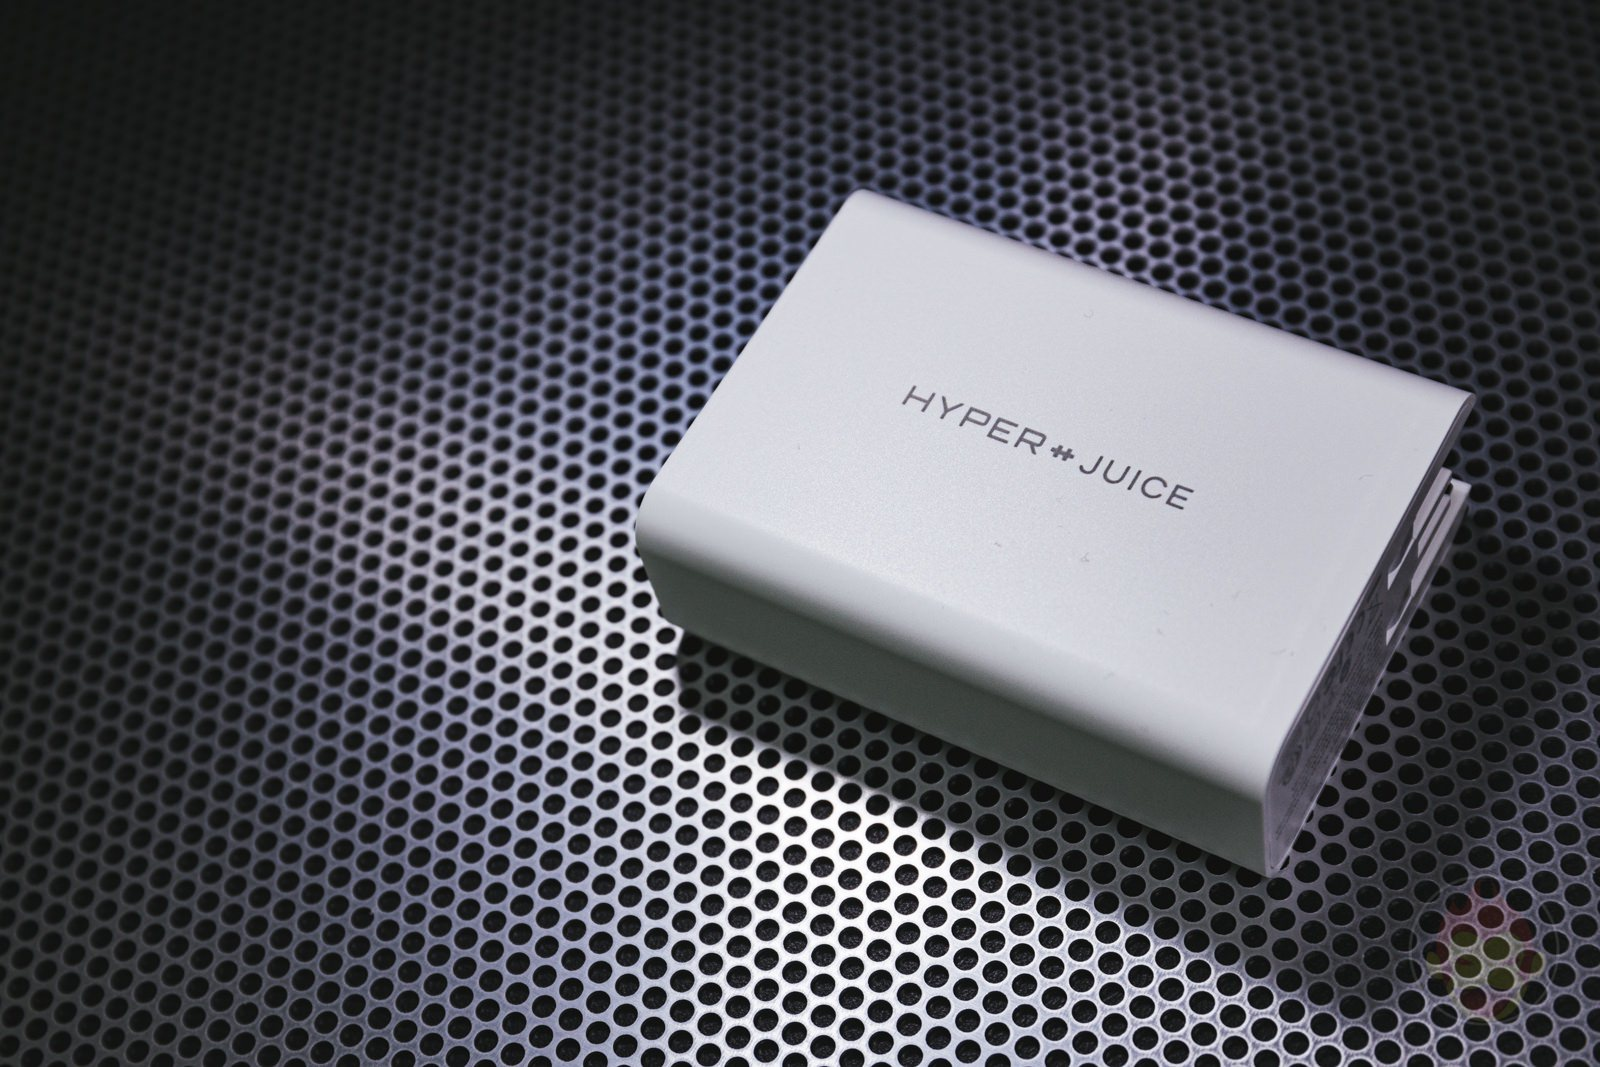 HyperJuice 100W GaN Charger Review 01